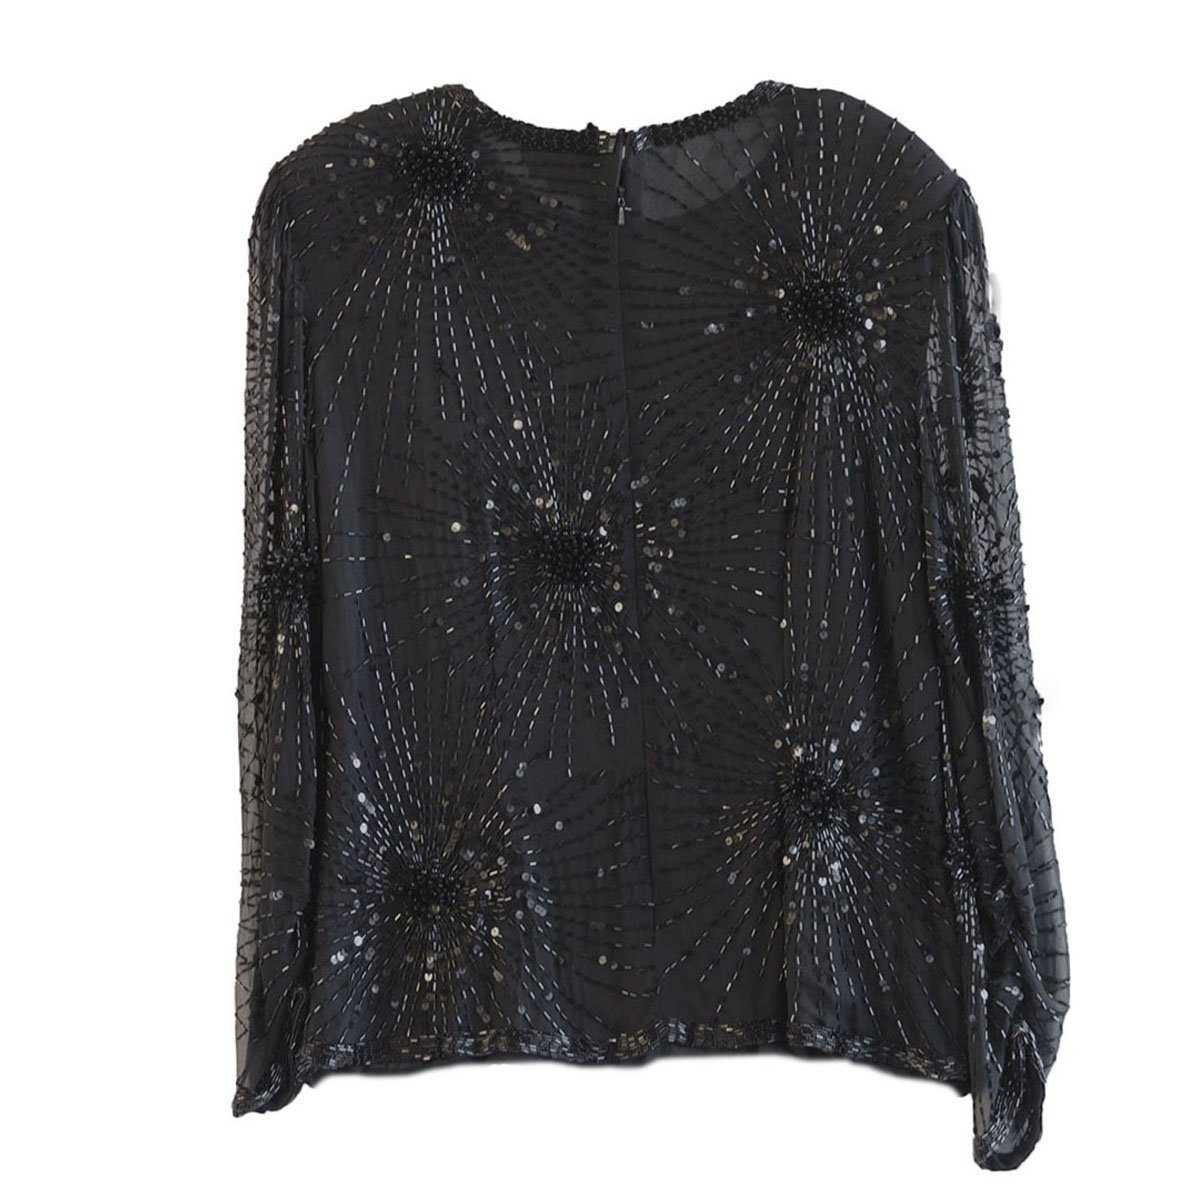 1970s Beaded Black Silk Chiffon Blouse 6 by Oleg Cassini